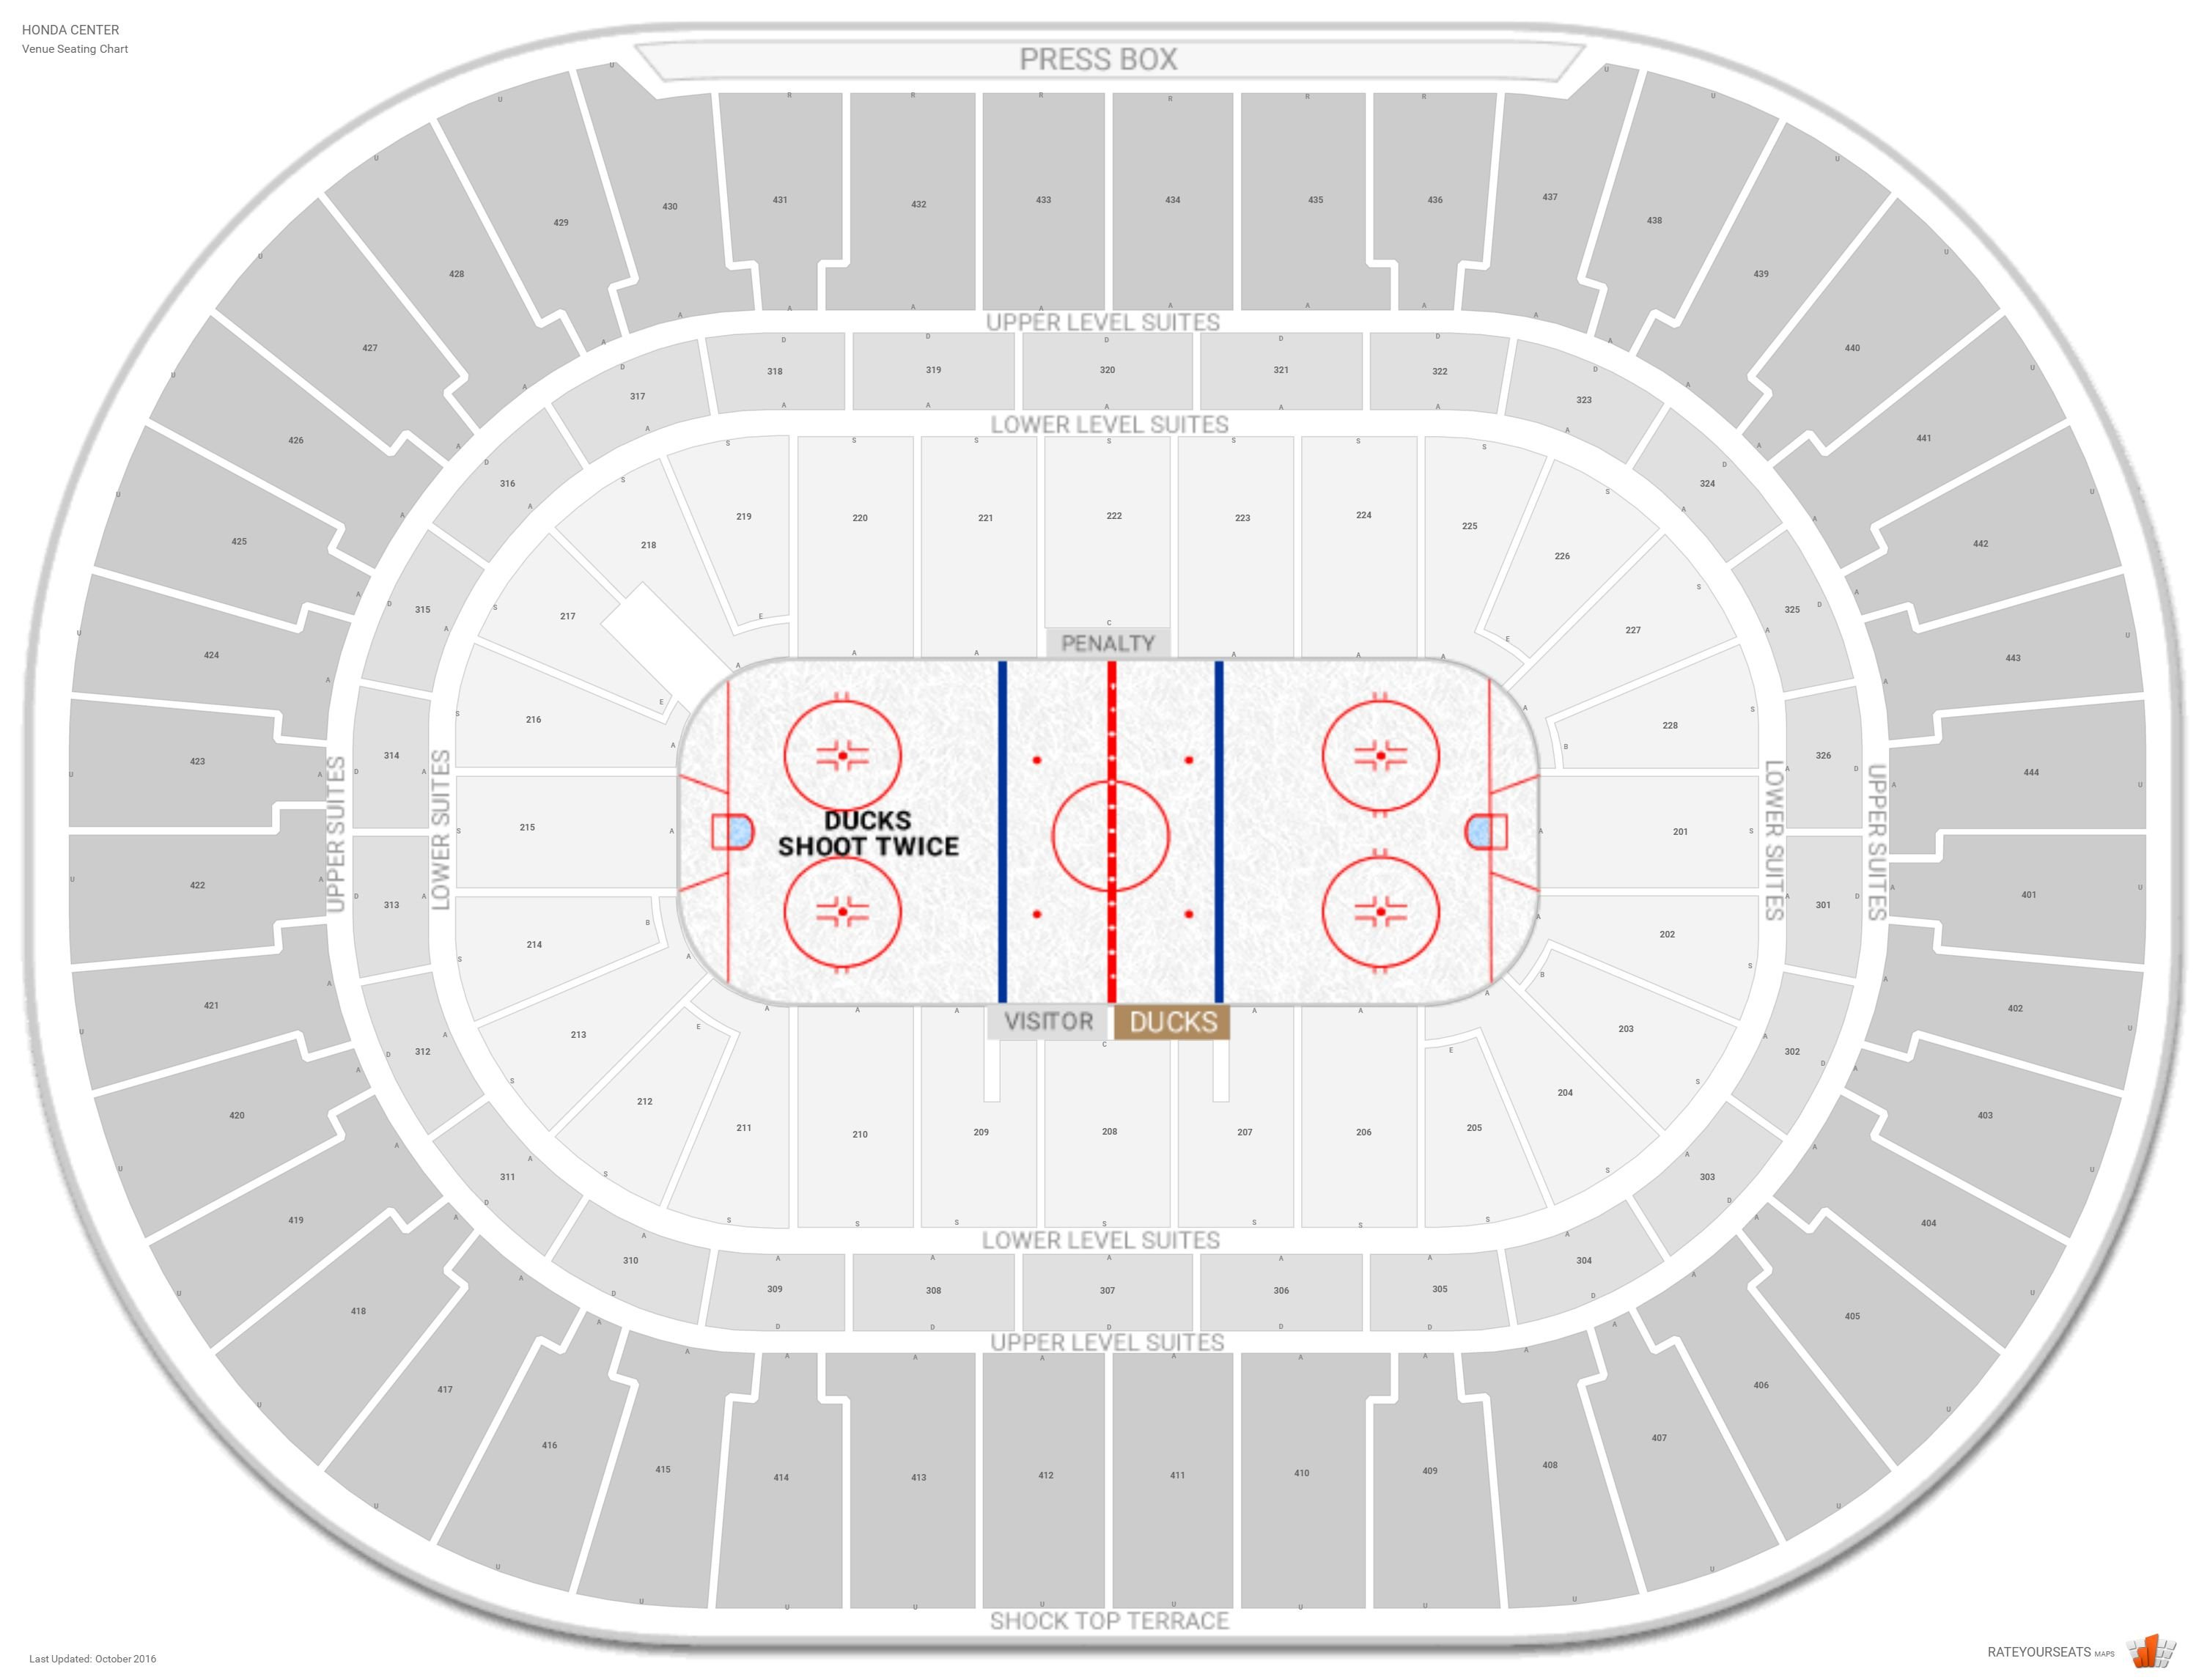 Honda Center Seating Chart With Row Numbers